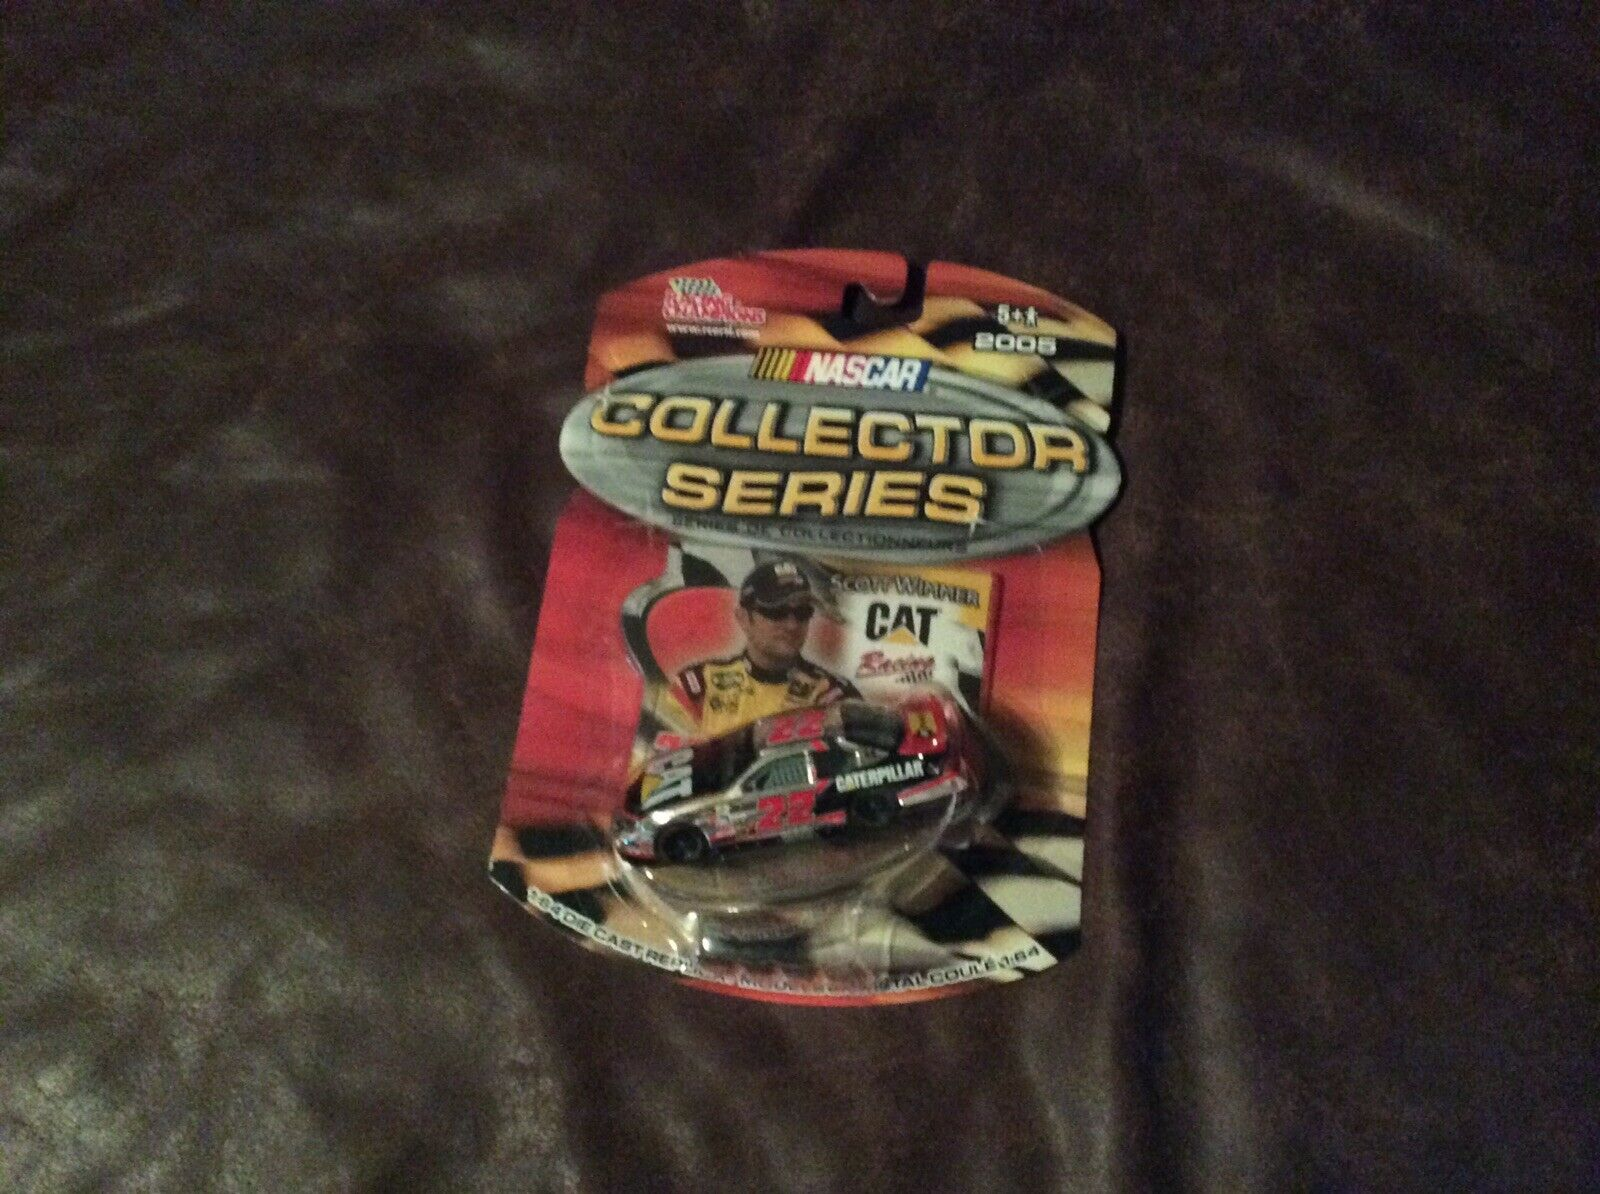 NASCAR COLLECTOR SERIES SCOTT WIMMER Chrome Chase